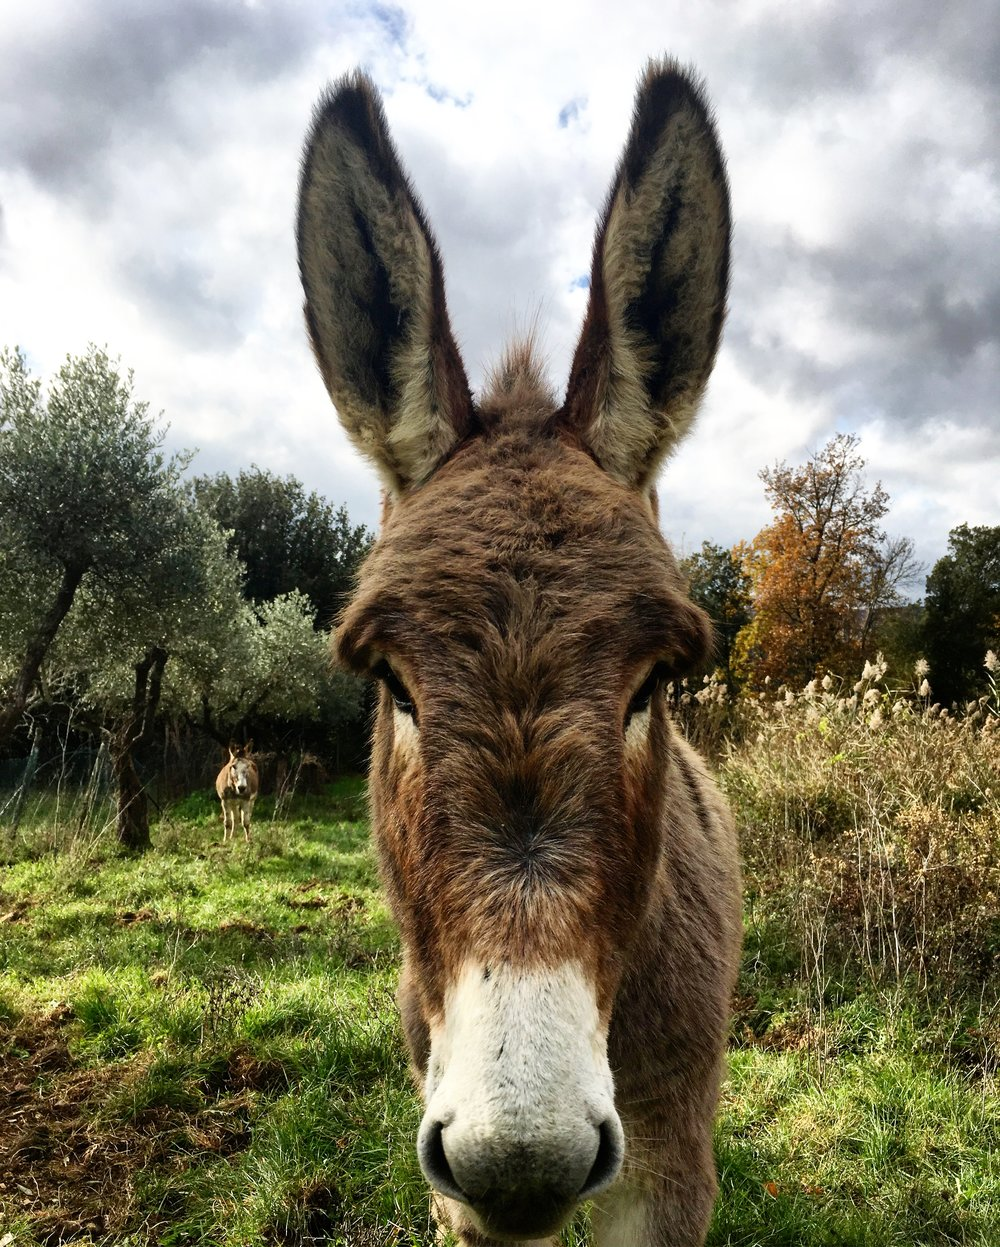 Donkeys in an olive grove at Spannocchia, during our return visit in the fall of 2016.